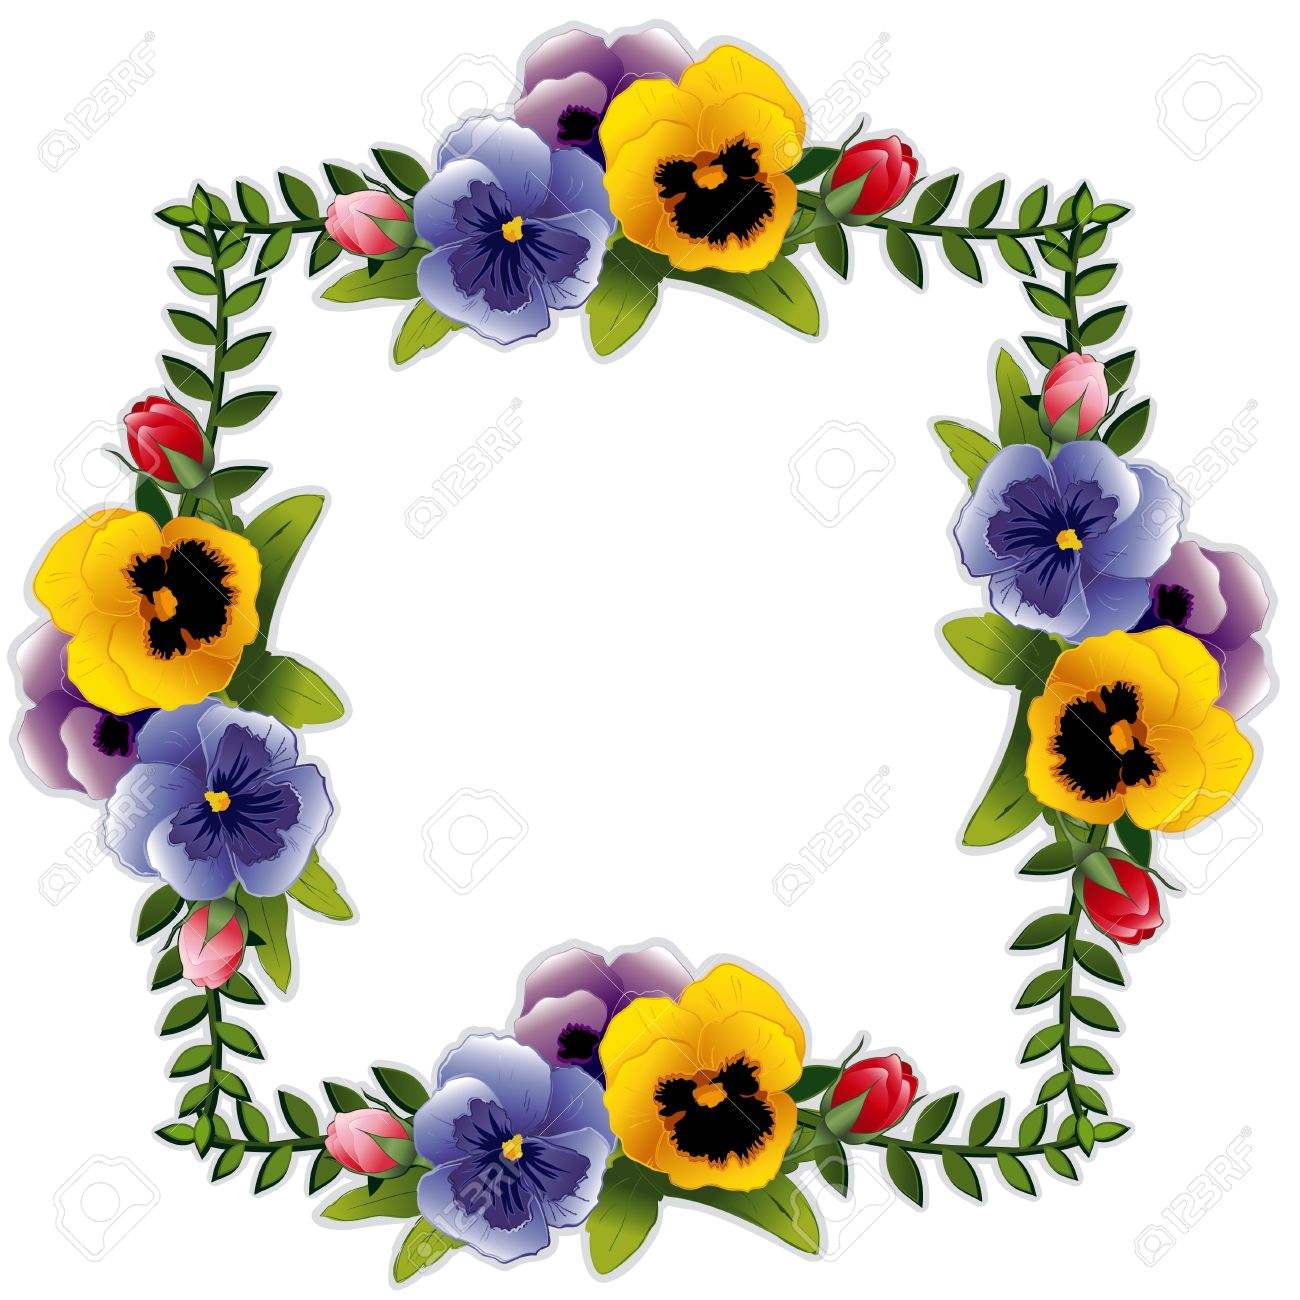 Victorian Flower Frame with Pansies and Roses. Copy space for your text or picture. Traditional for gift tag, card, label or announcement for celebrations, holidays, scrapbooks, albums. Stock Vector - 12392312